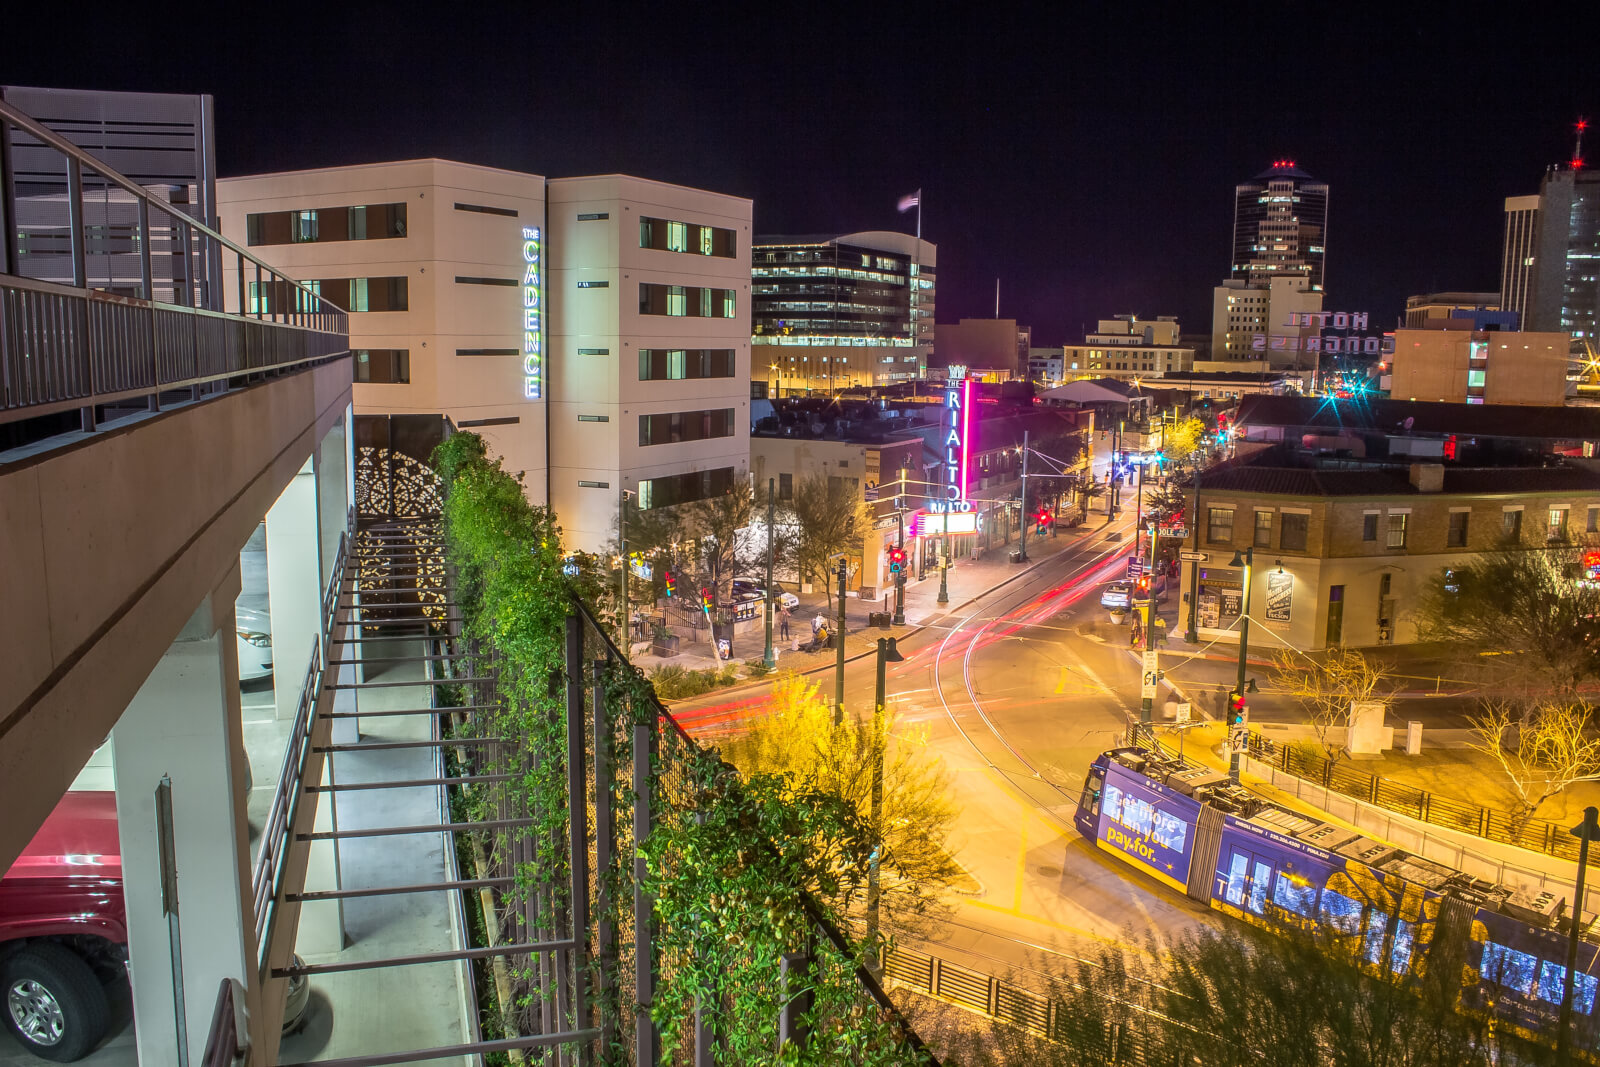 Downtown Tucson with colorful lights taken at night.